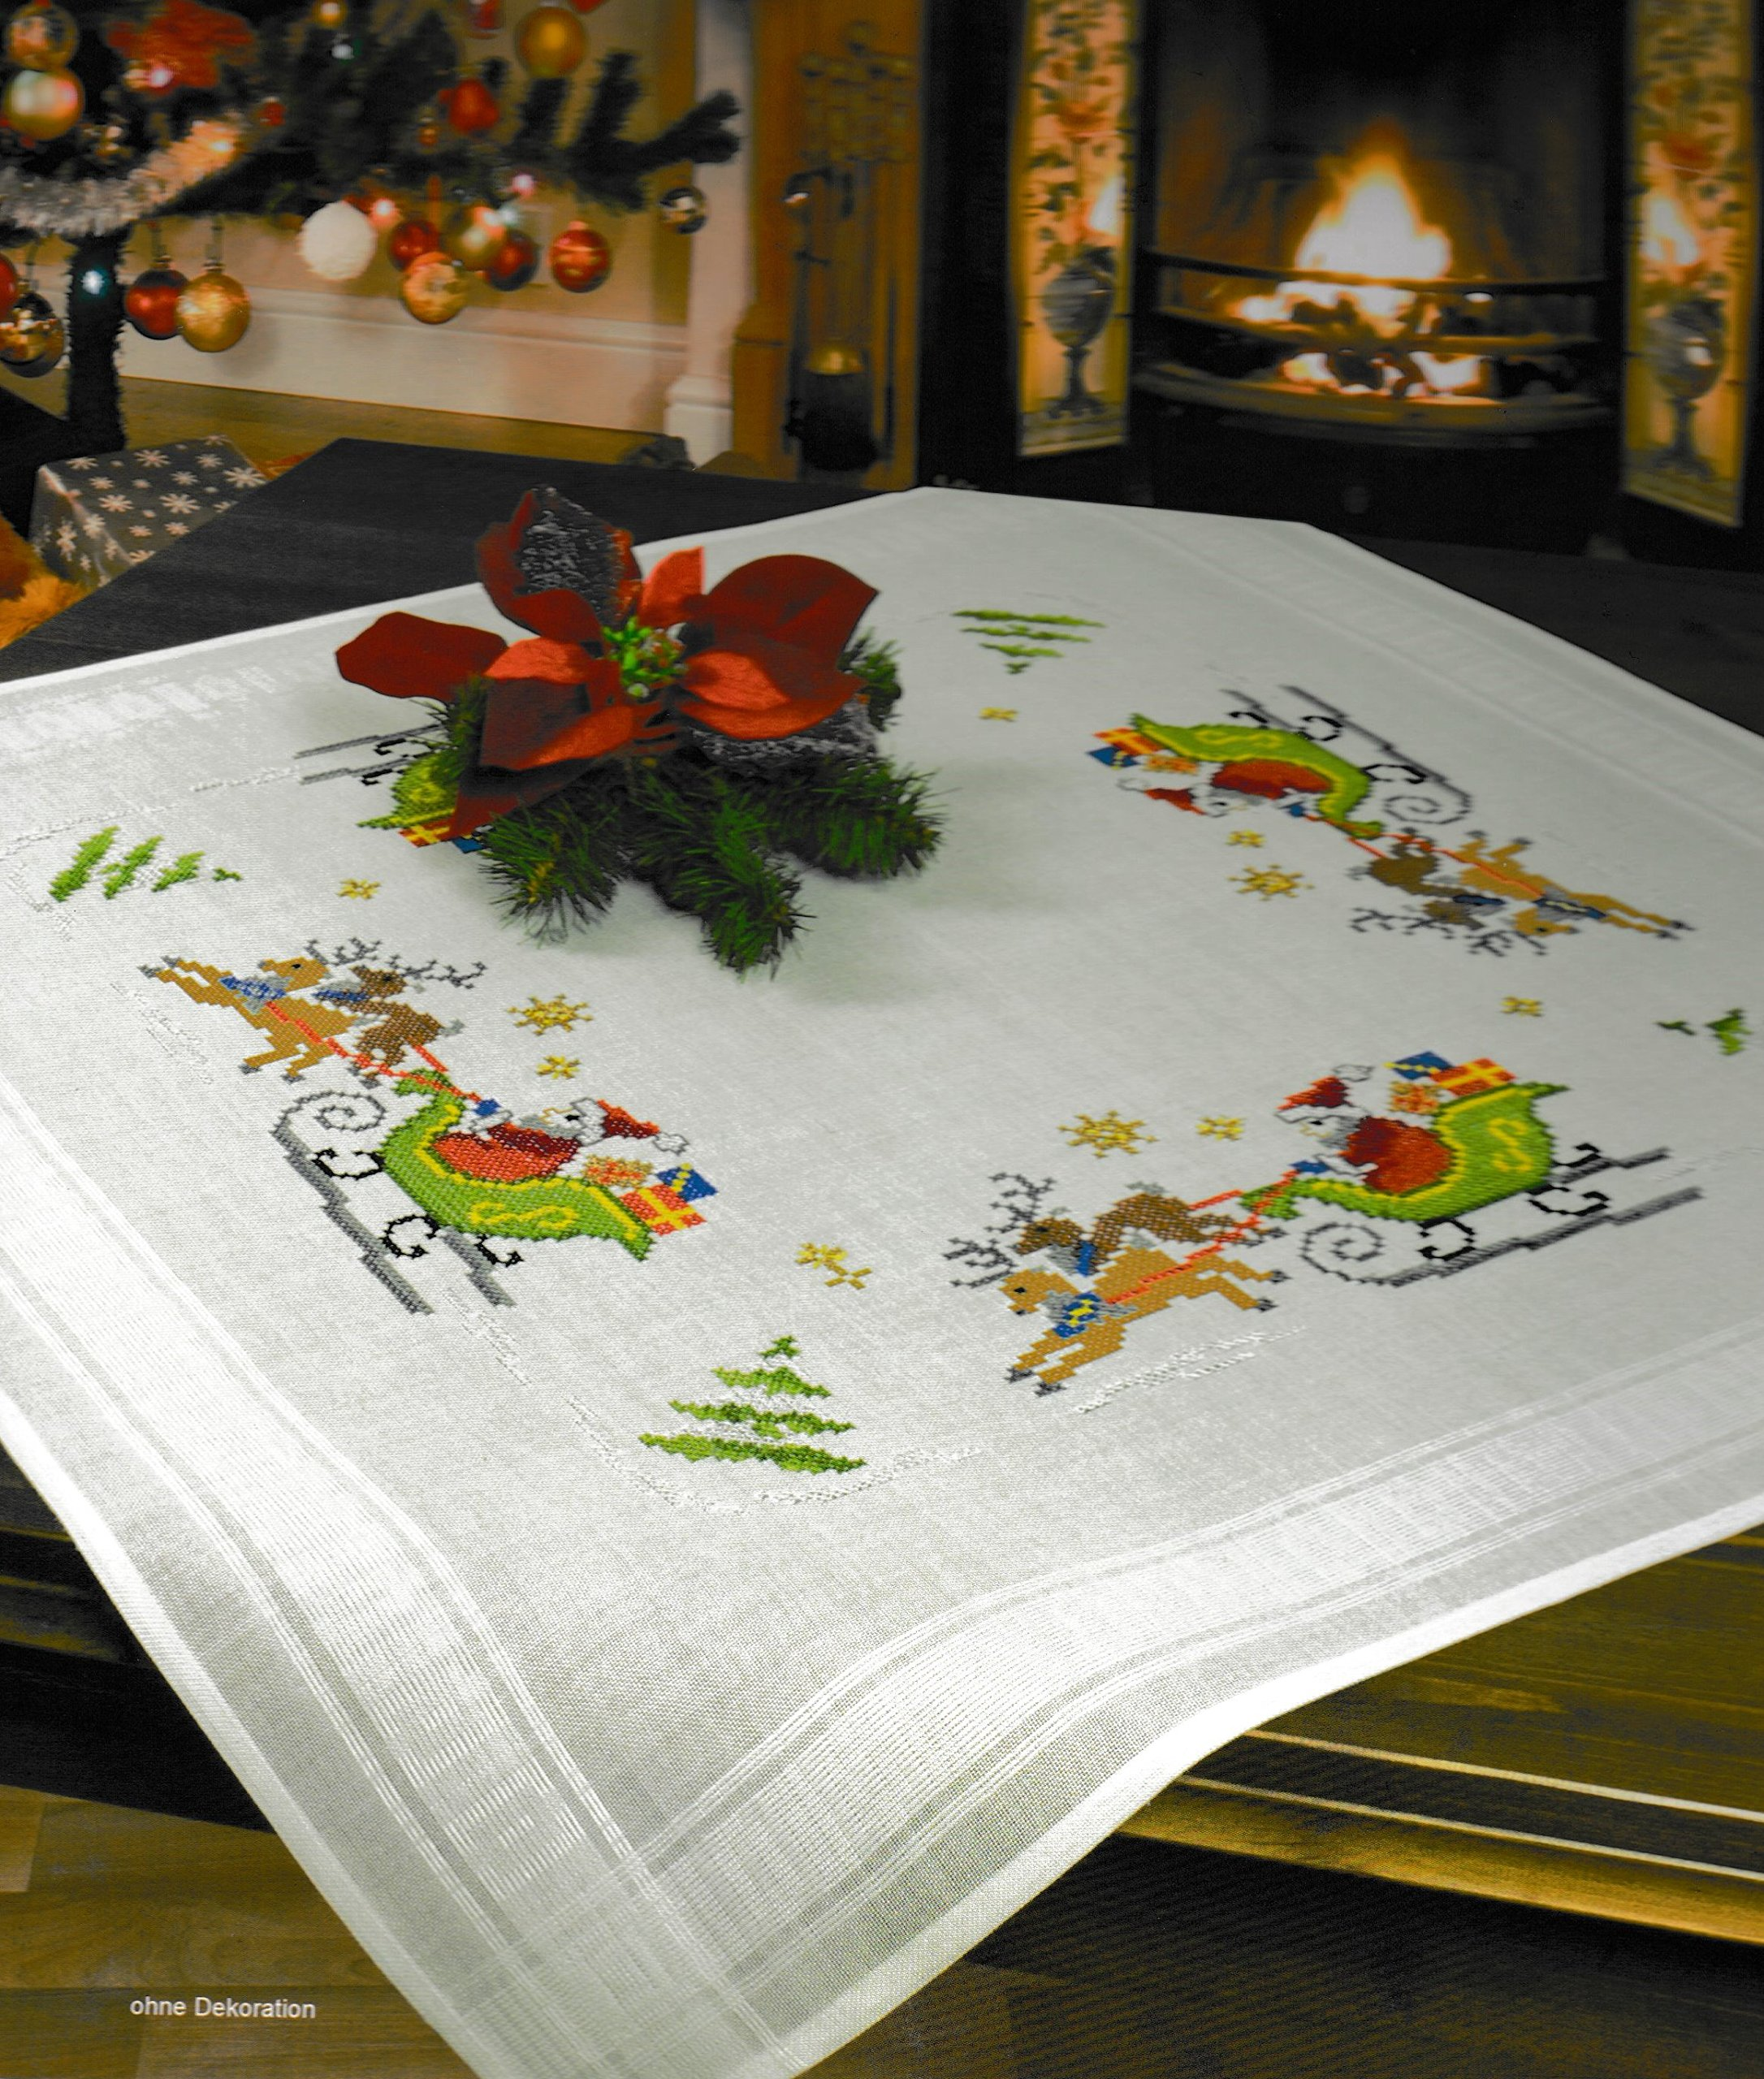 European Embroidery Sewing Kit Table Top Embroidery Kit Nob Hill Linens Sewing Kit Vintage Embroidery Kit Table Linen